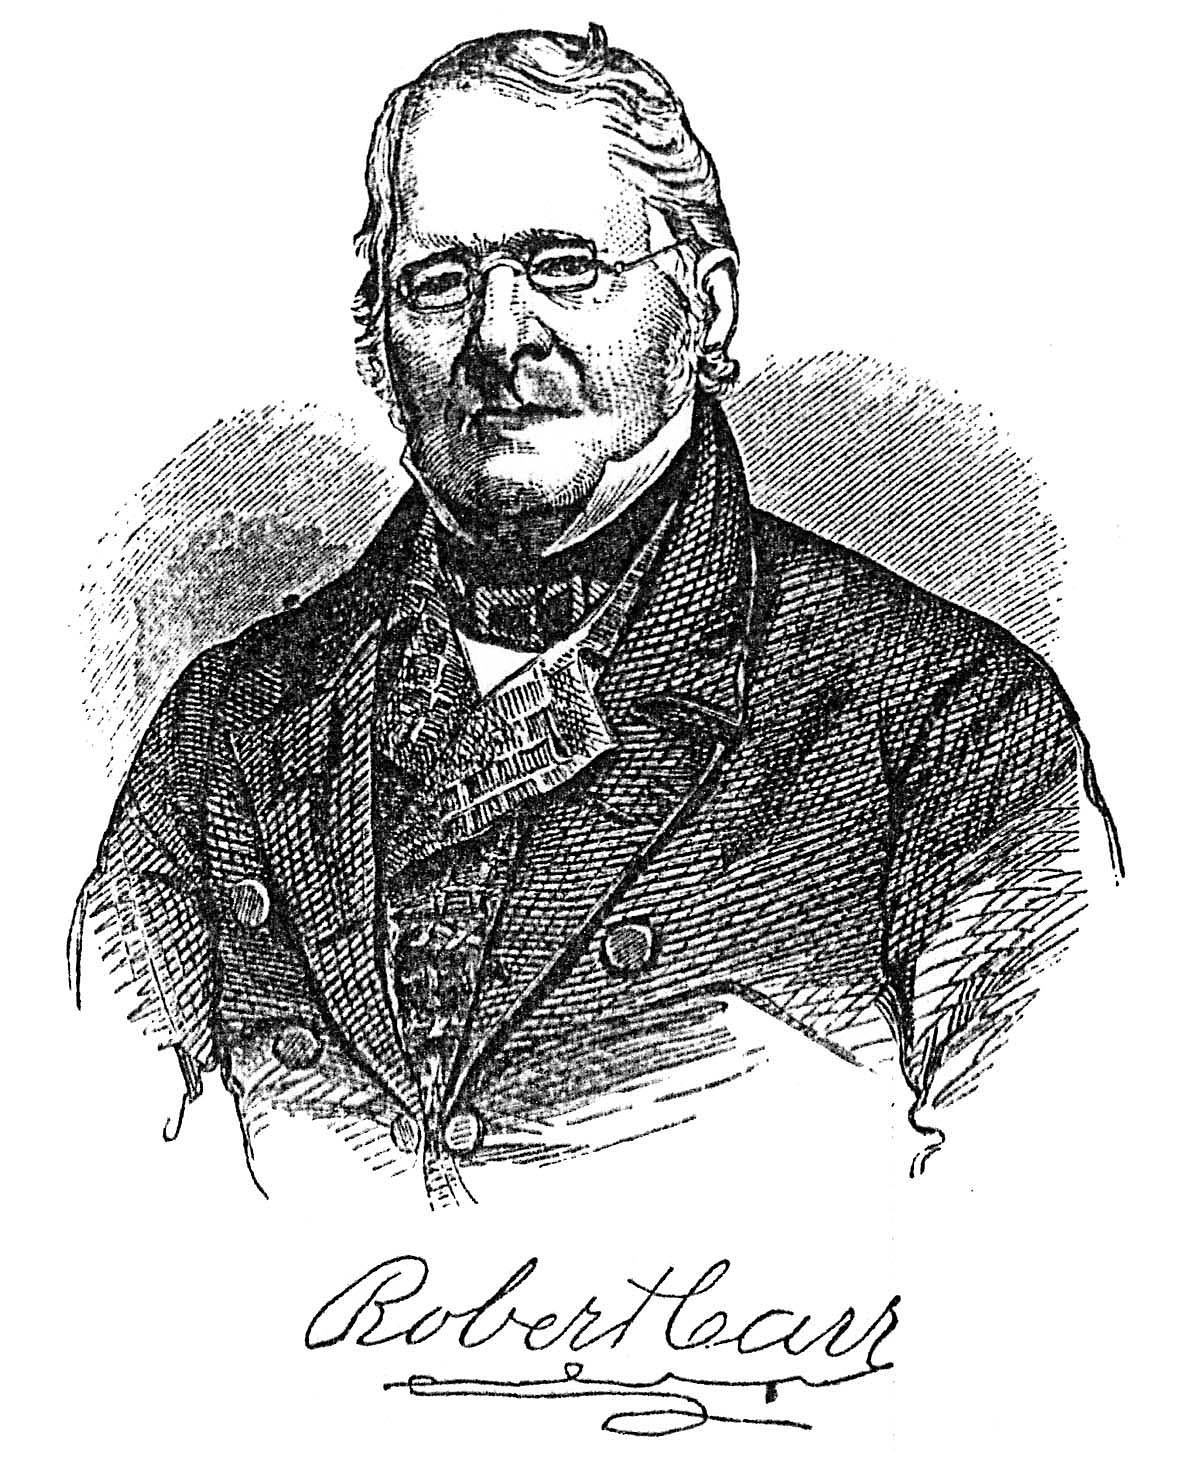 This portrait of Col. Robert Carr is a wood engraving (taken from a photograph) from Benson J. Lossing,  The Pictorial Field-Book of the War of 1812  (Harper & Brothers, Publishers, New York: 1869, p. 640).